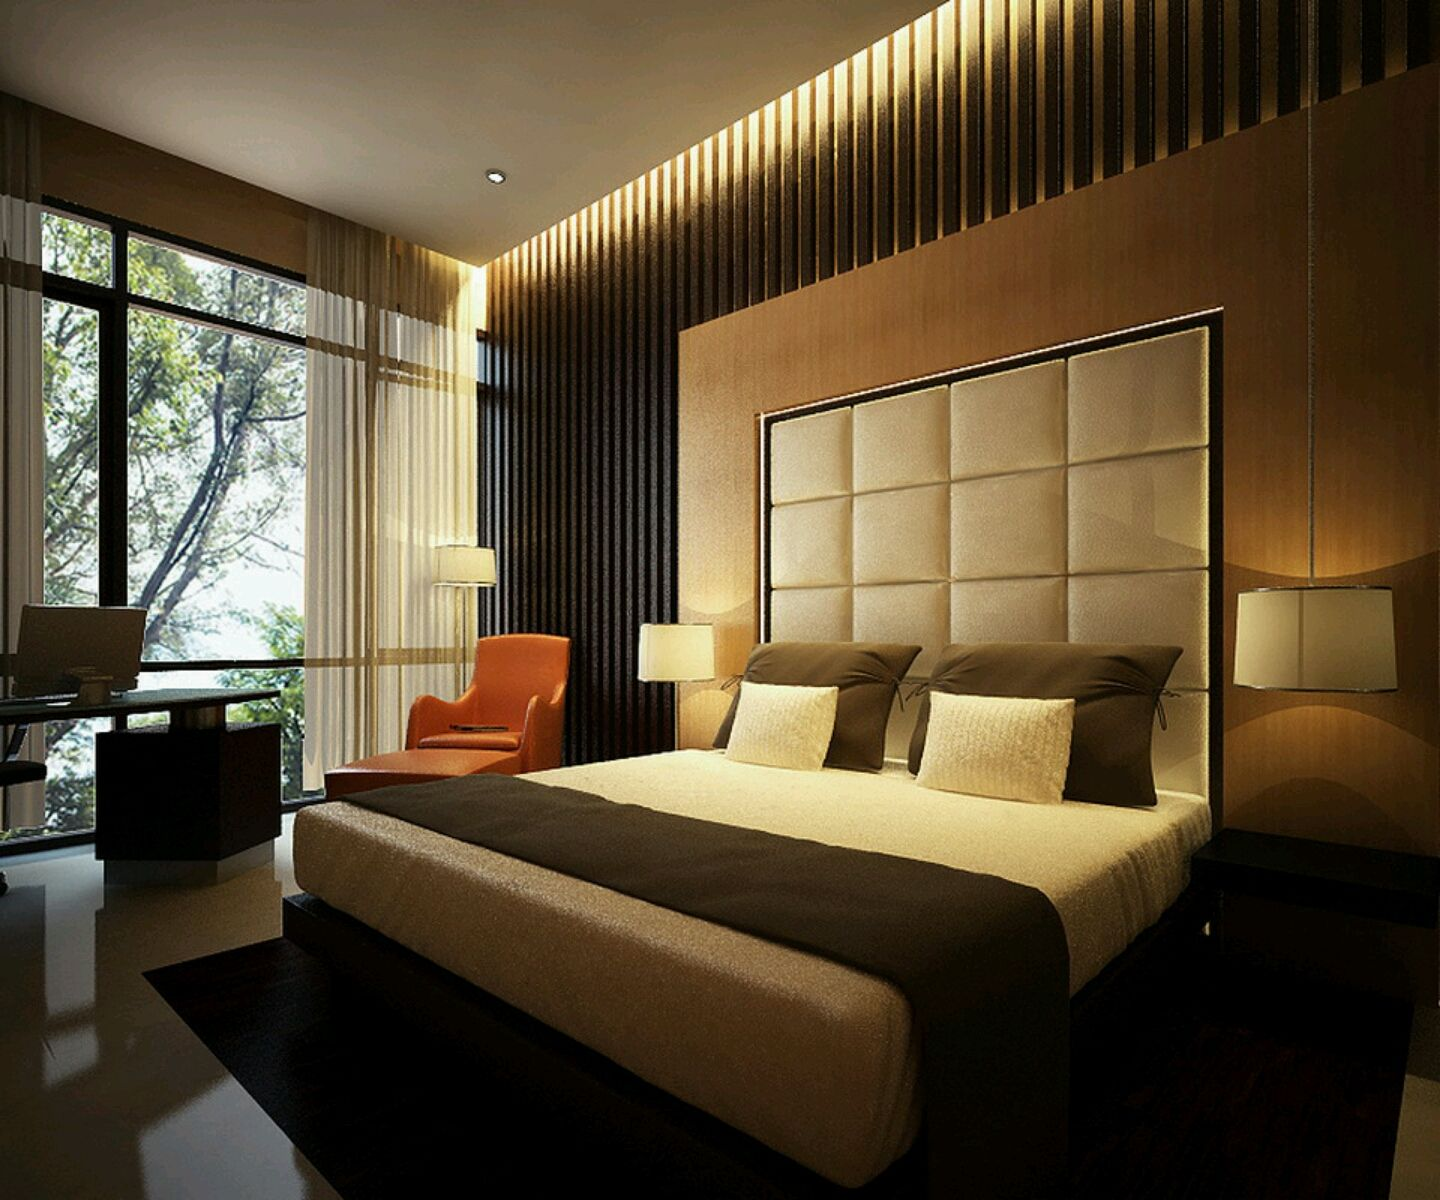 Modern concept of bedroom design ideas yahoo india image search results also rh ar pinterest